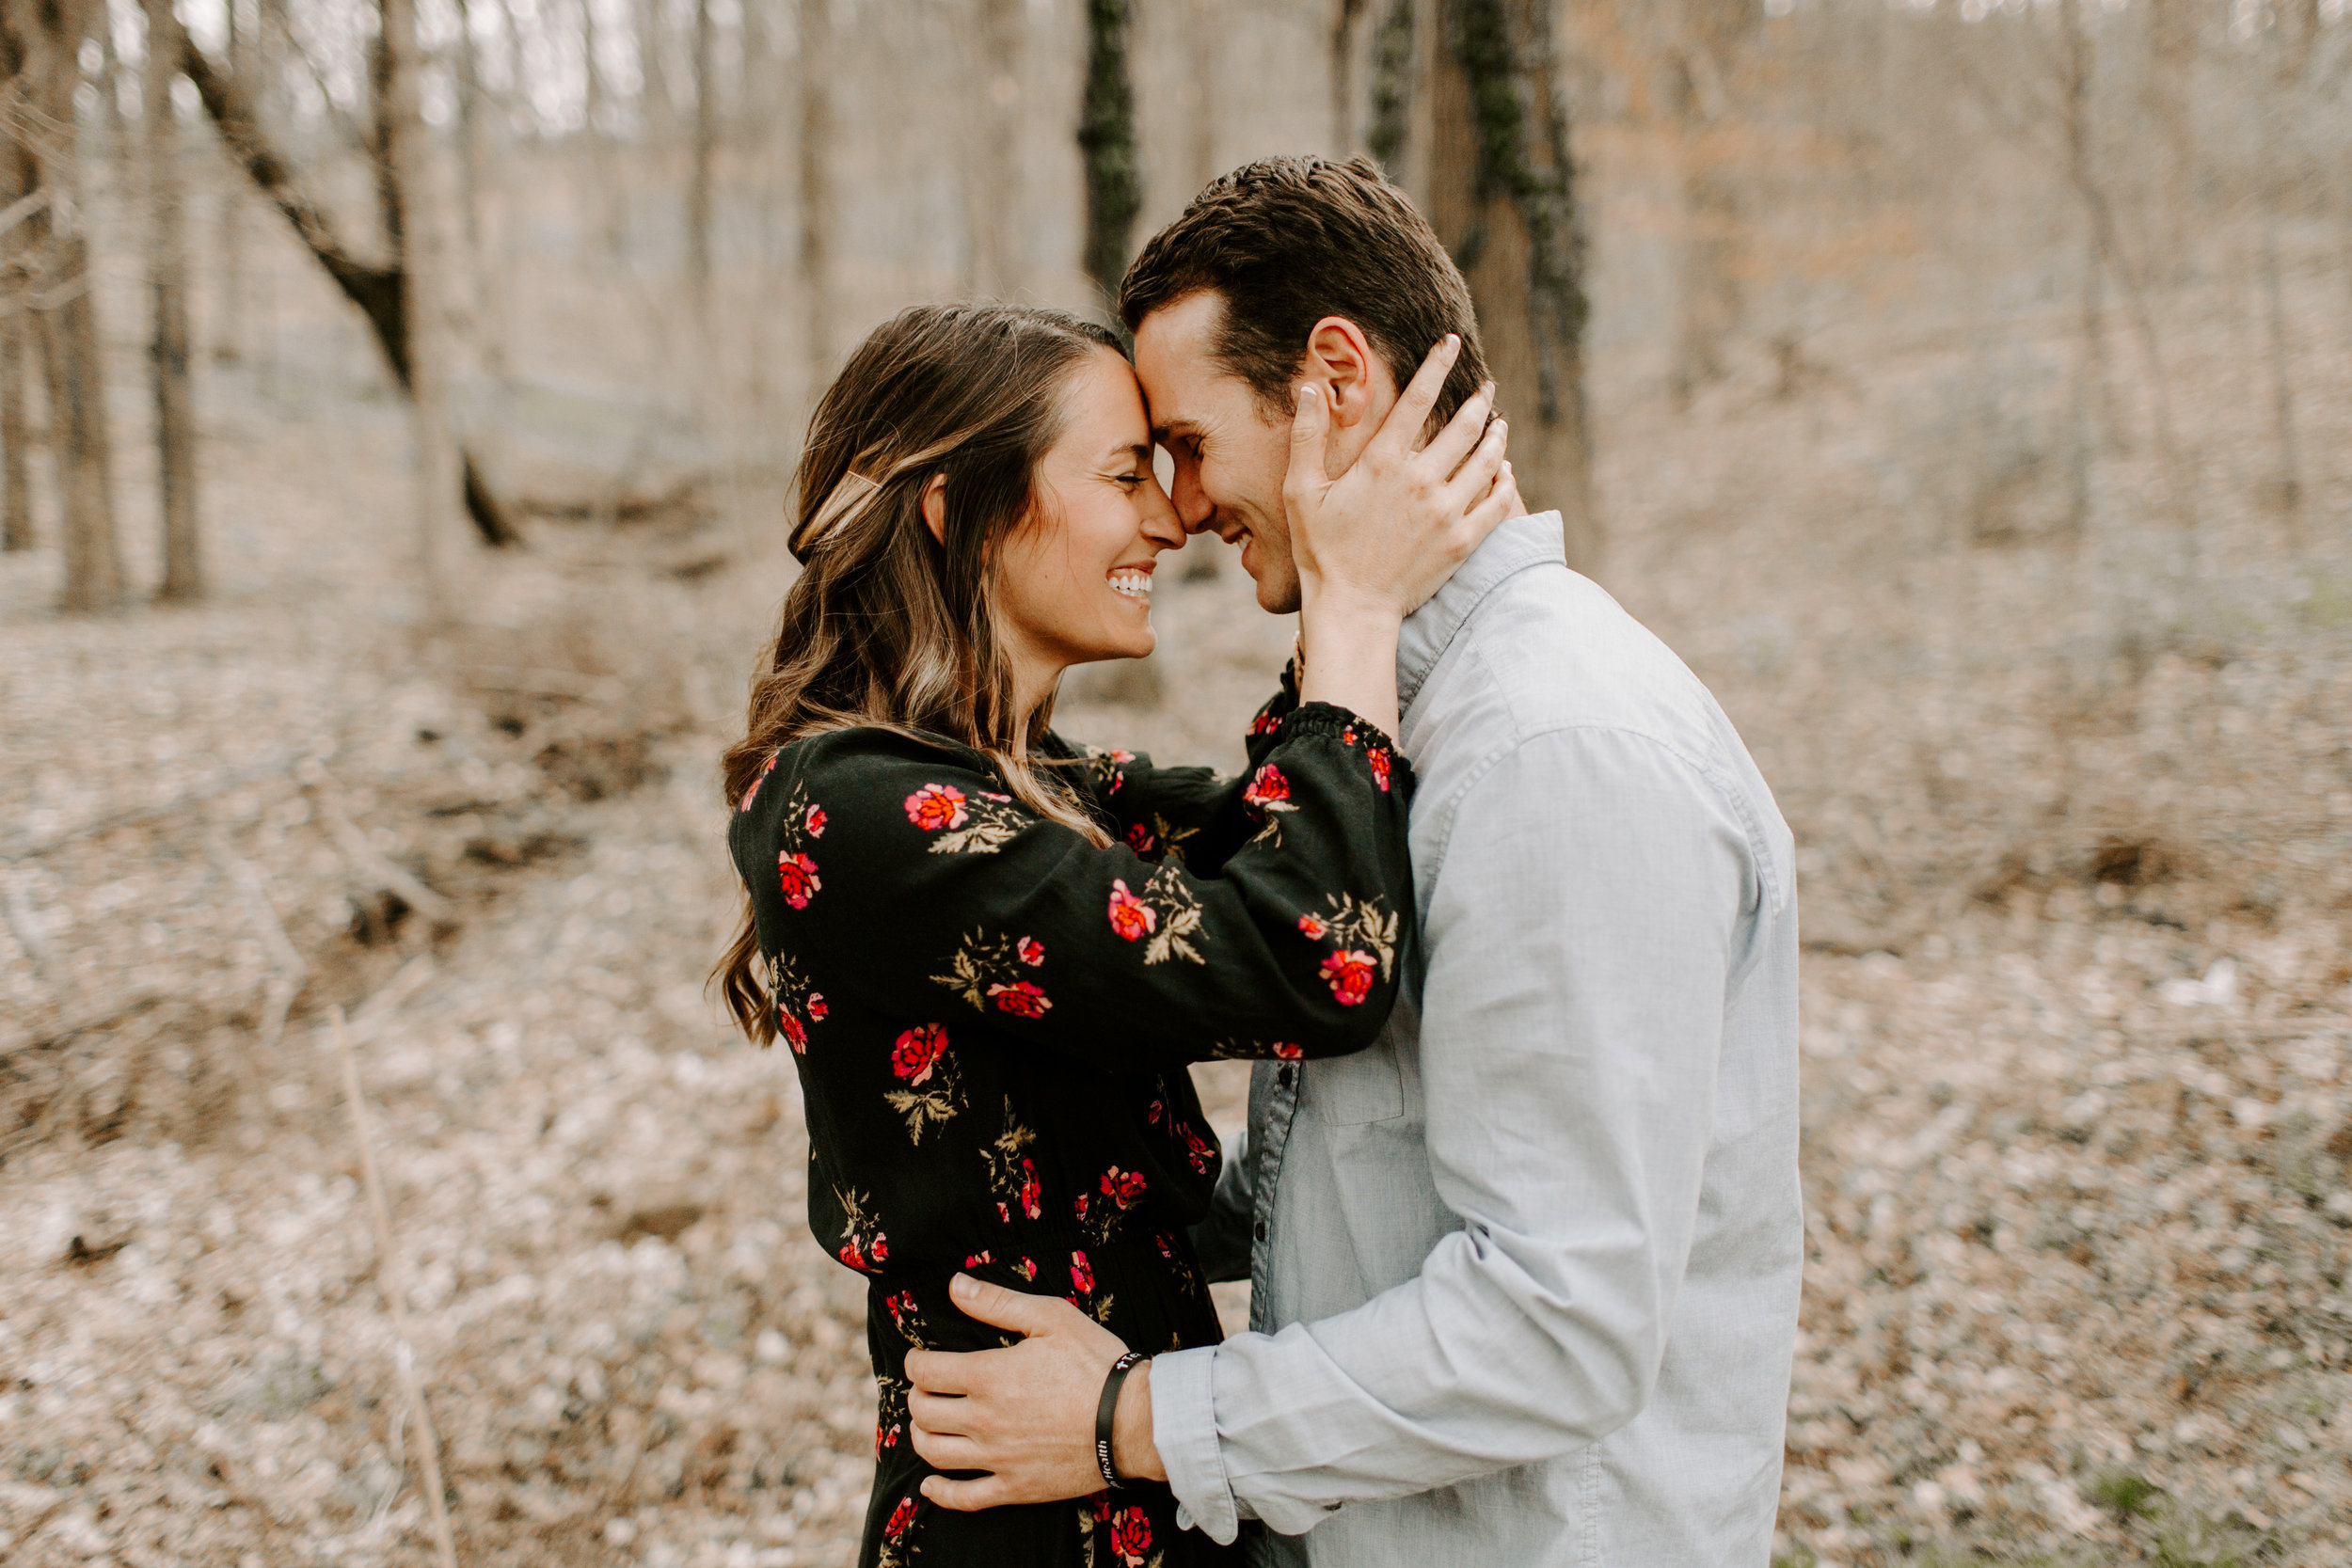 2018.03.16_kayleematt_nashville_engagement_elissavossphotography_previews_07.jpg